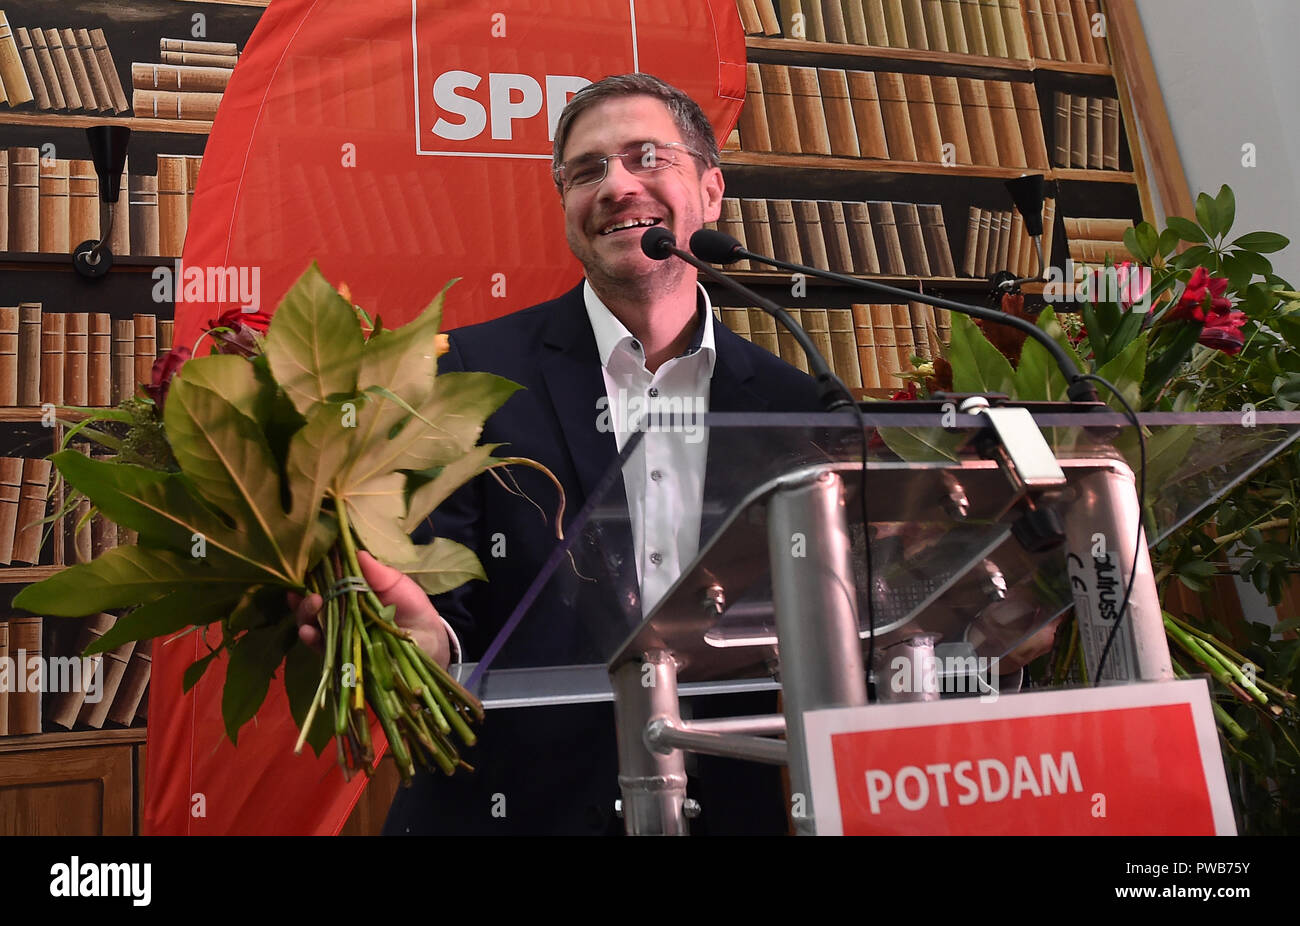 Potsdam, Brandenburg. 14th Oct, 2018. 14 October 2018, Germany, Potsdam: Mike Schubert (SPD) is at the election party with two bouquets of flowers. He was elected the new Lord Mayor with 55.3 percent of the votes. Credit: Bernd Settnik/dpa-Zen tralbild/dpa/Alamy Live News - Stock Image